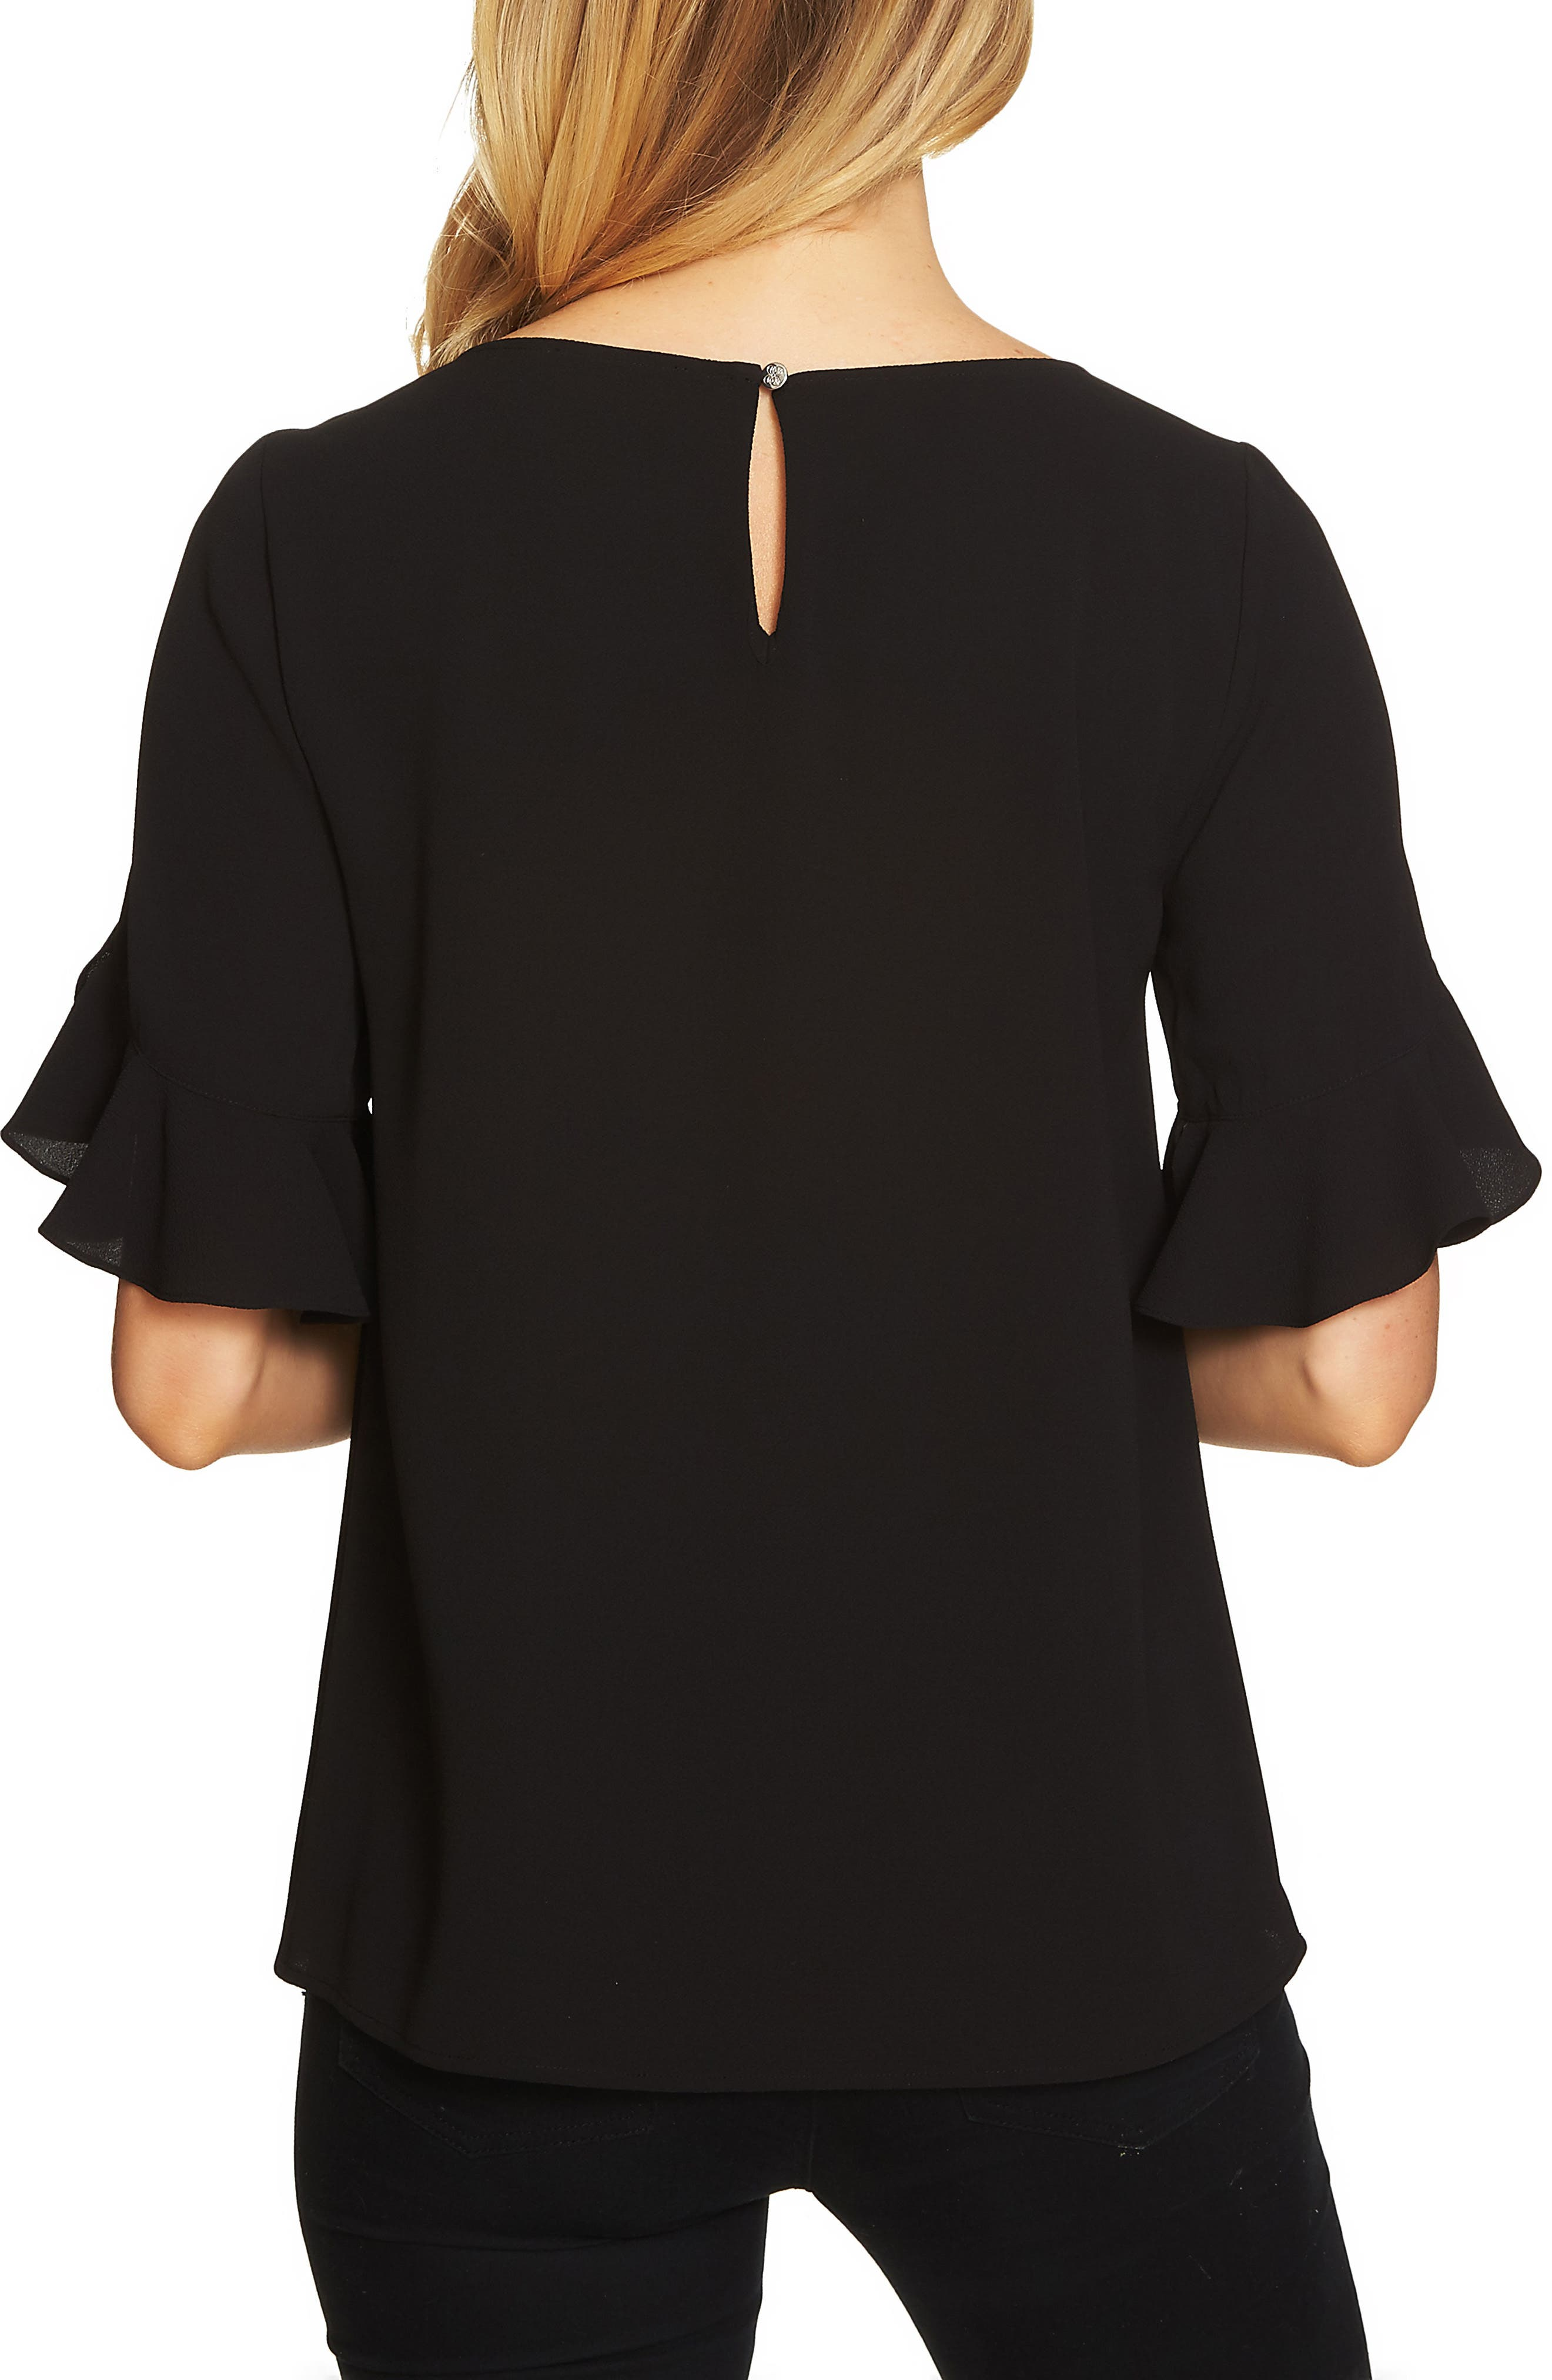 Ruffle Sleeve Blouse,                             Alternate thumbnail 2, color,                             Rich Black